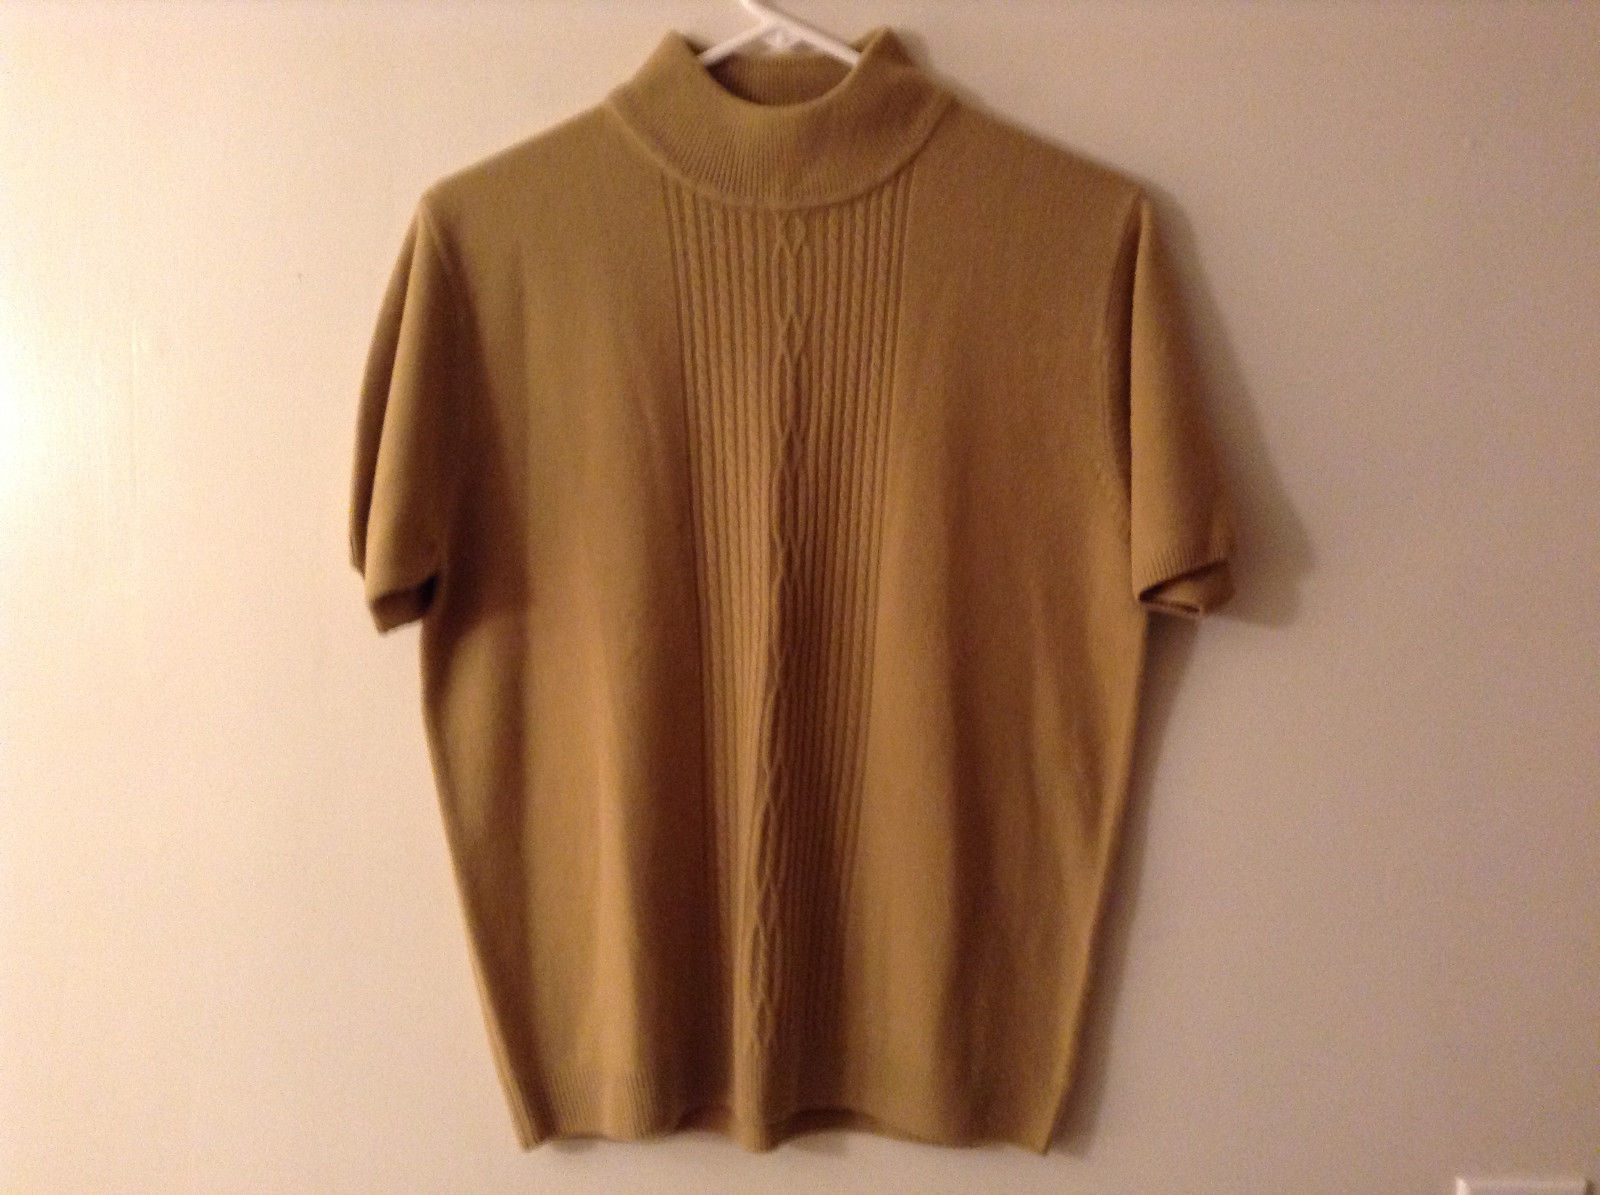 """Ship n' Shore"" Women's Size M Mock Neck Sweater Camel Brown Light Cable Knit"